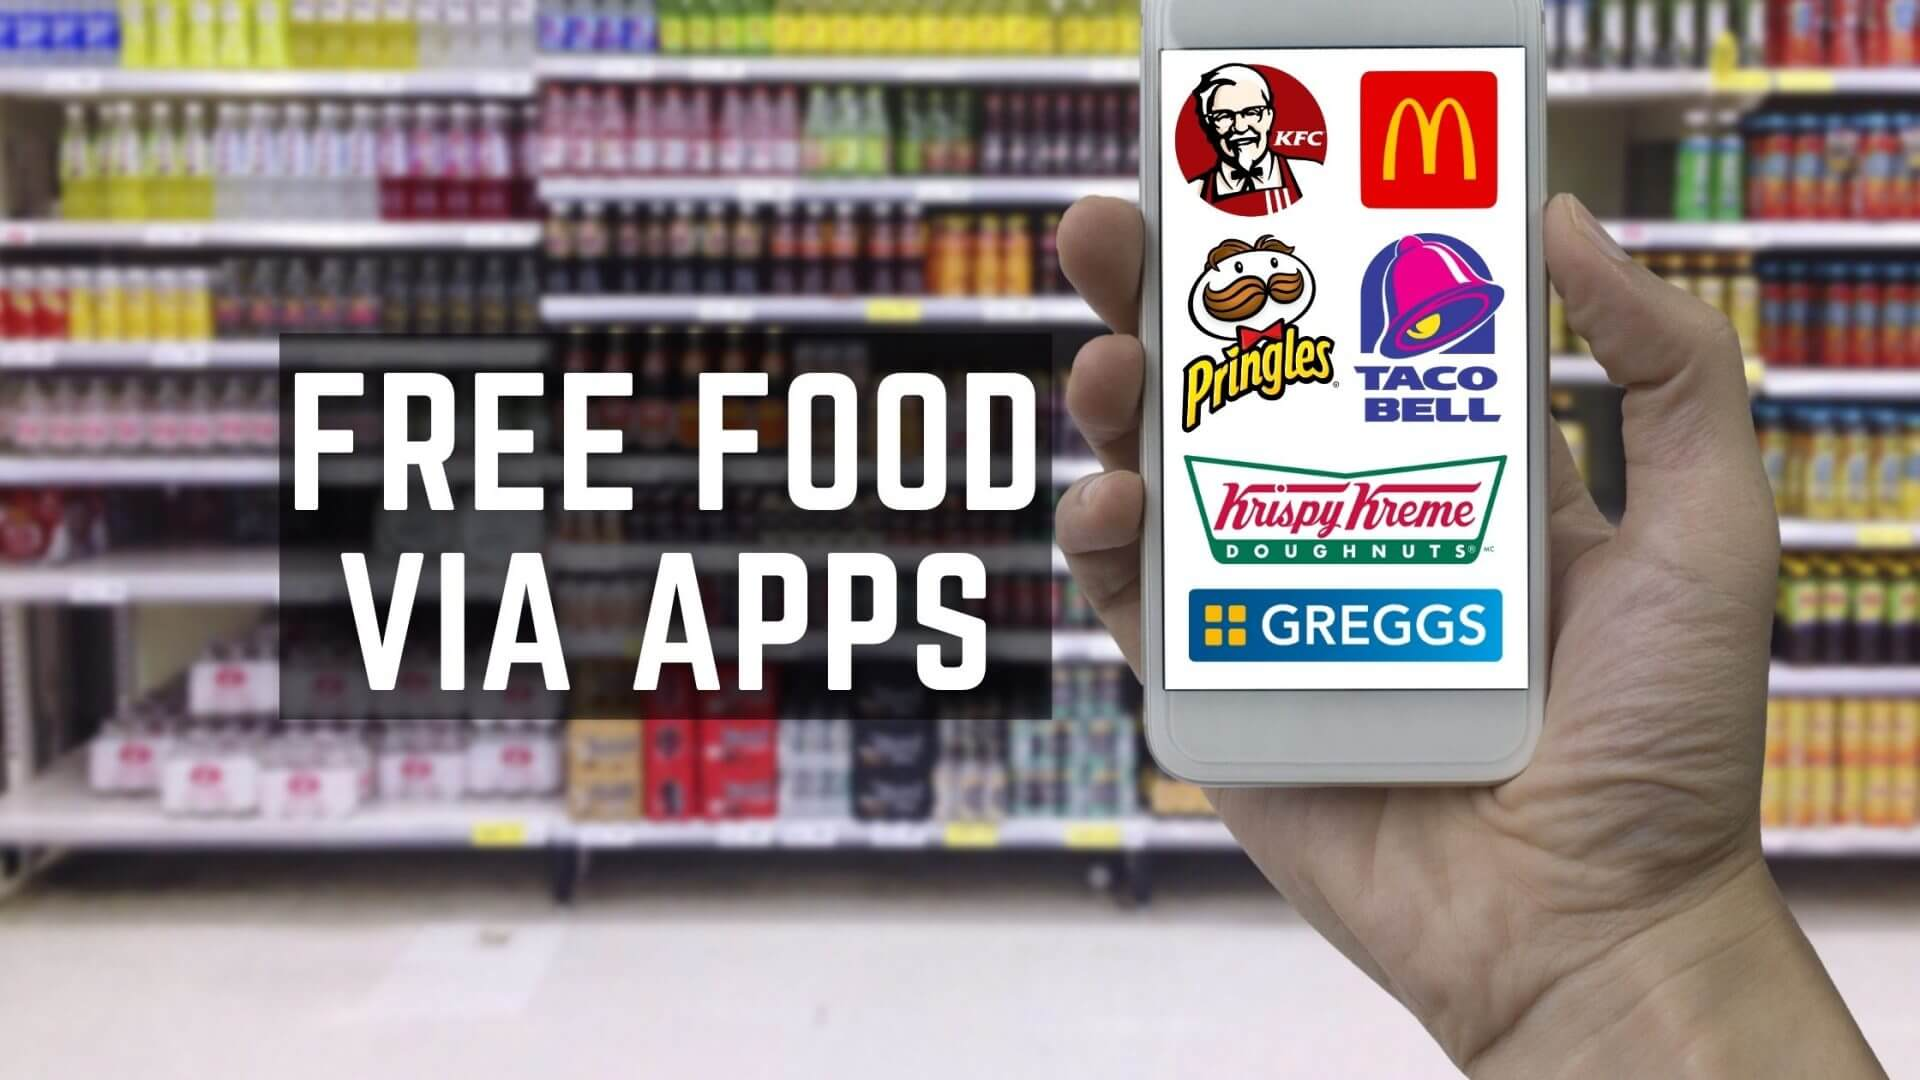 Free Food From Apps UK With Freebies Supermarkets Restaurants